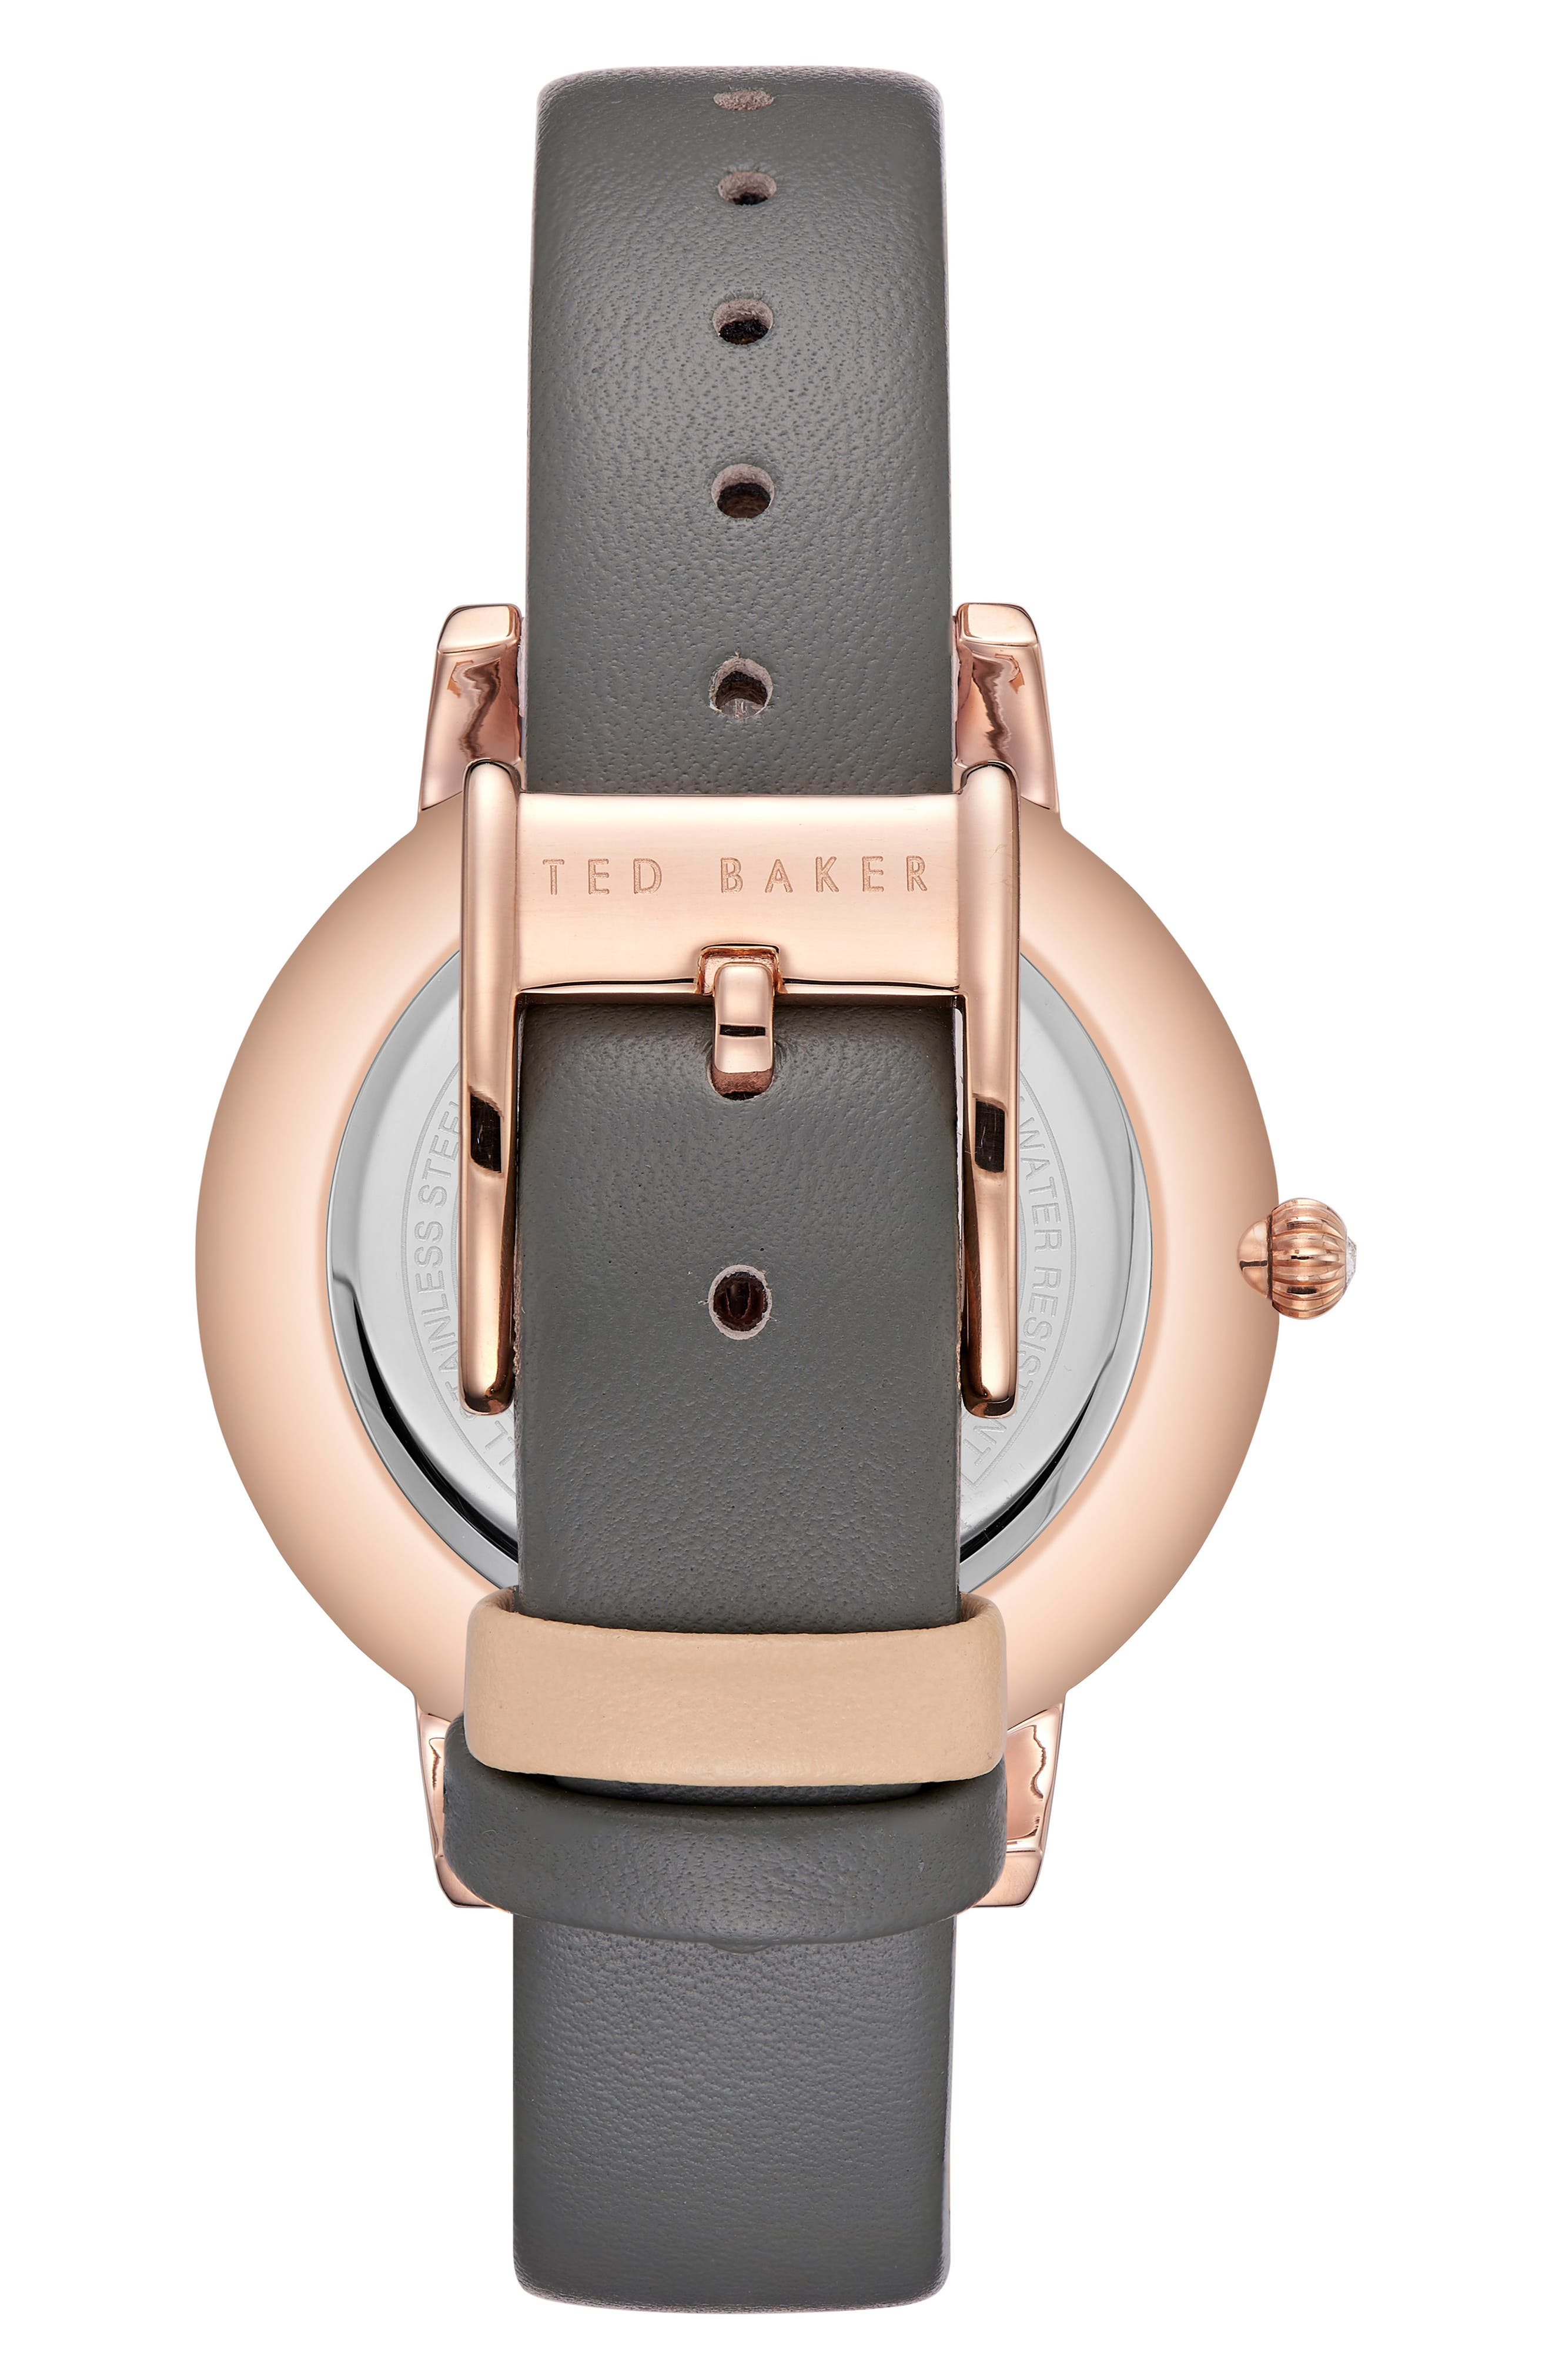 TED BAKER LONDON, Kate Leather Strap Watch, 40mm, Alternate thumbnail 2, color, 020